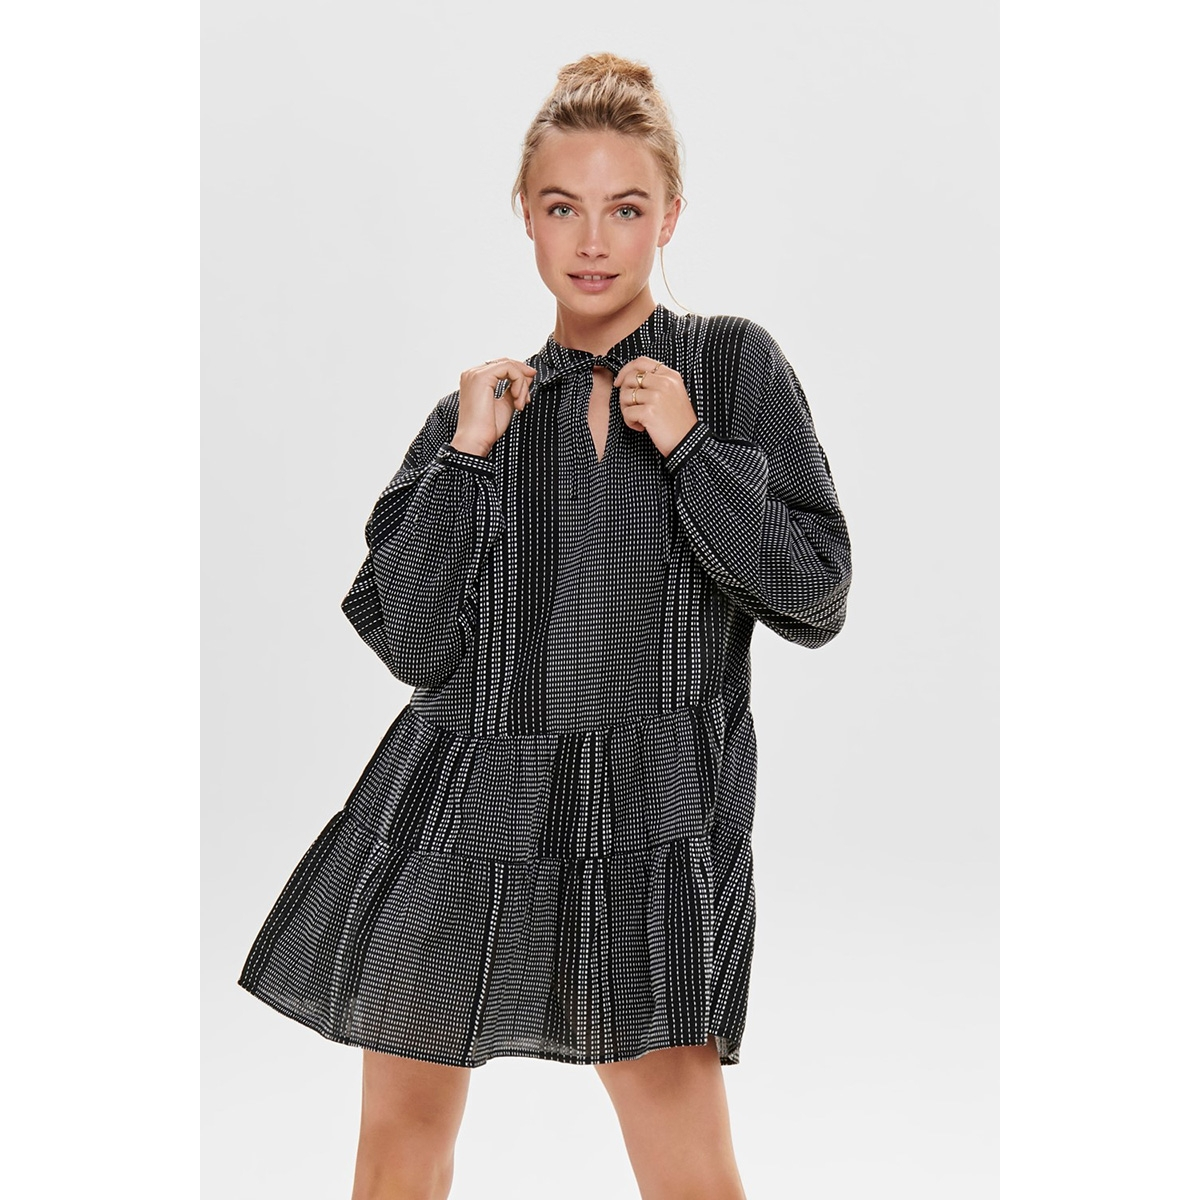 onlnew athena l/s dress wvn 15203397 only jurk black/black w. white